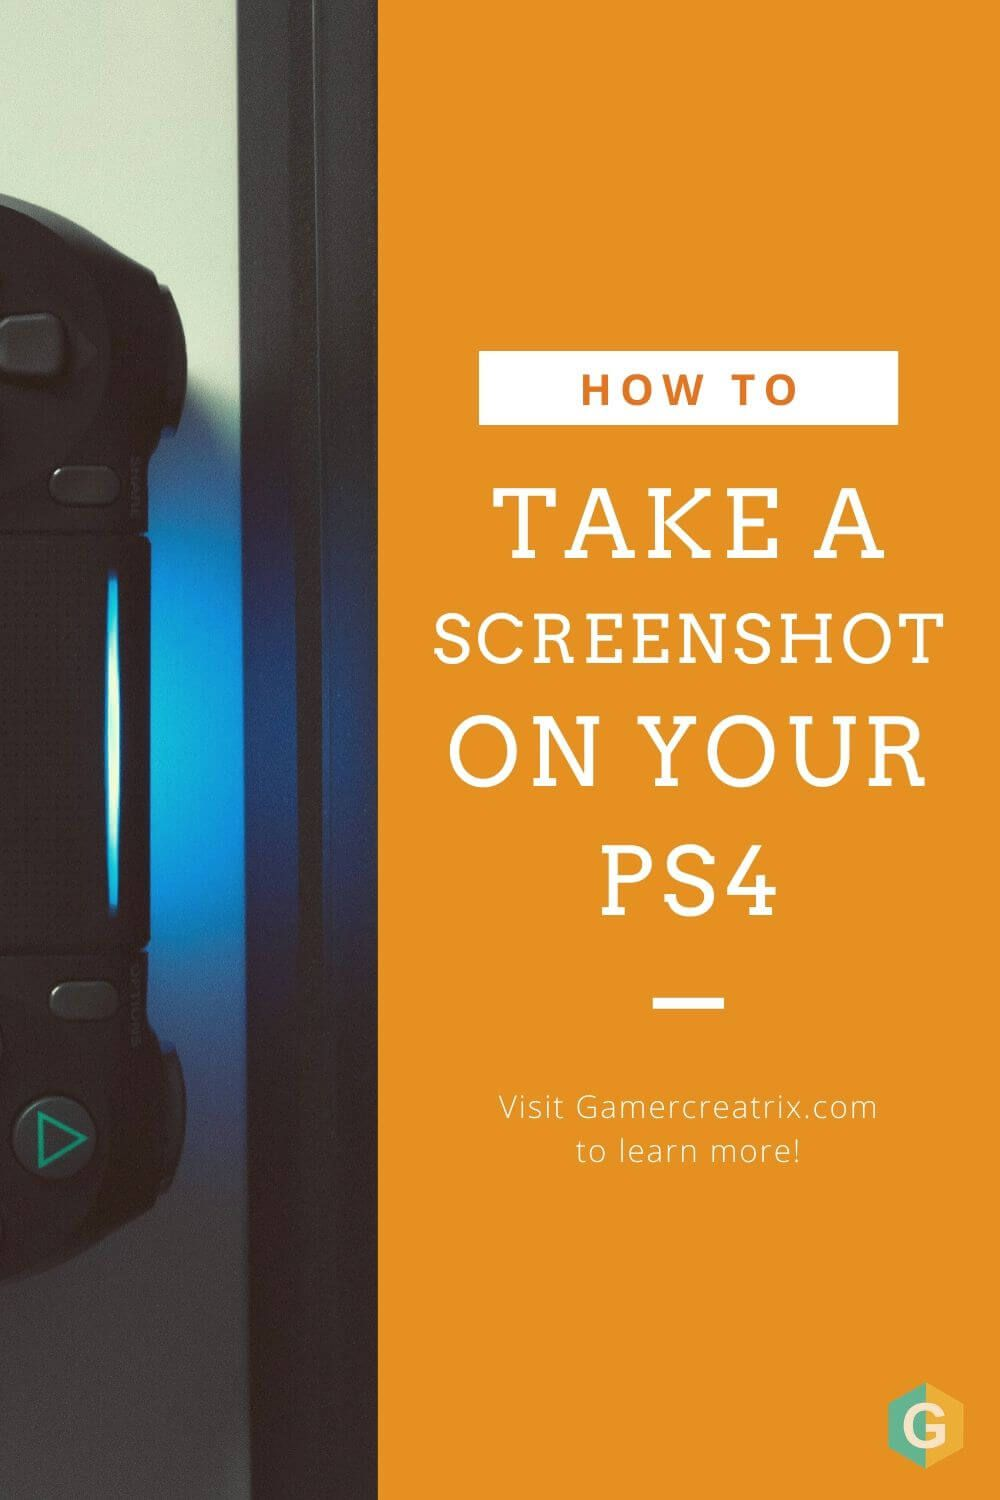 How To Easily Take A Screenshot On Your Ps4 In 2020 Take A Screenshot Take That Ps4